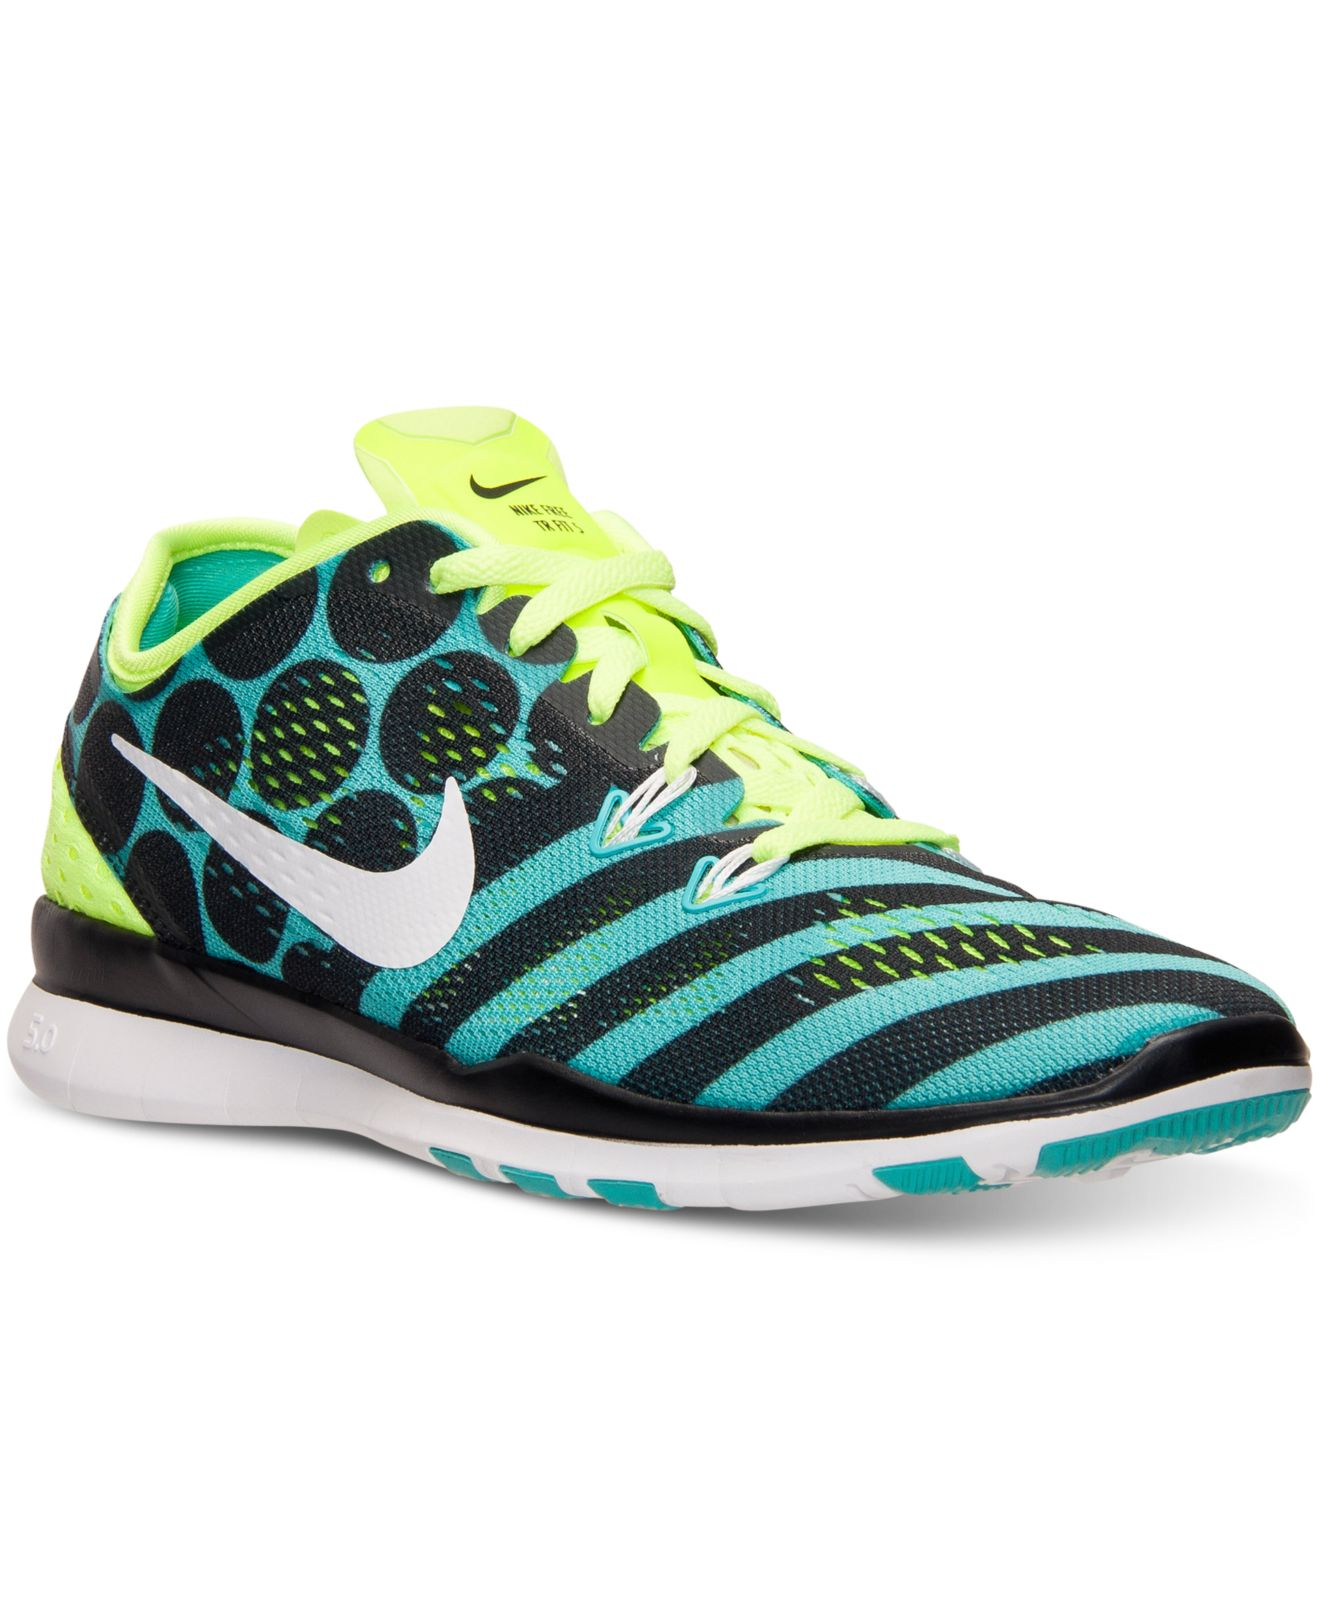 online store 90749 5a458 nike free 5.0 at finish line